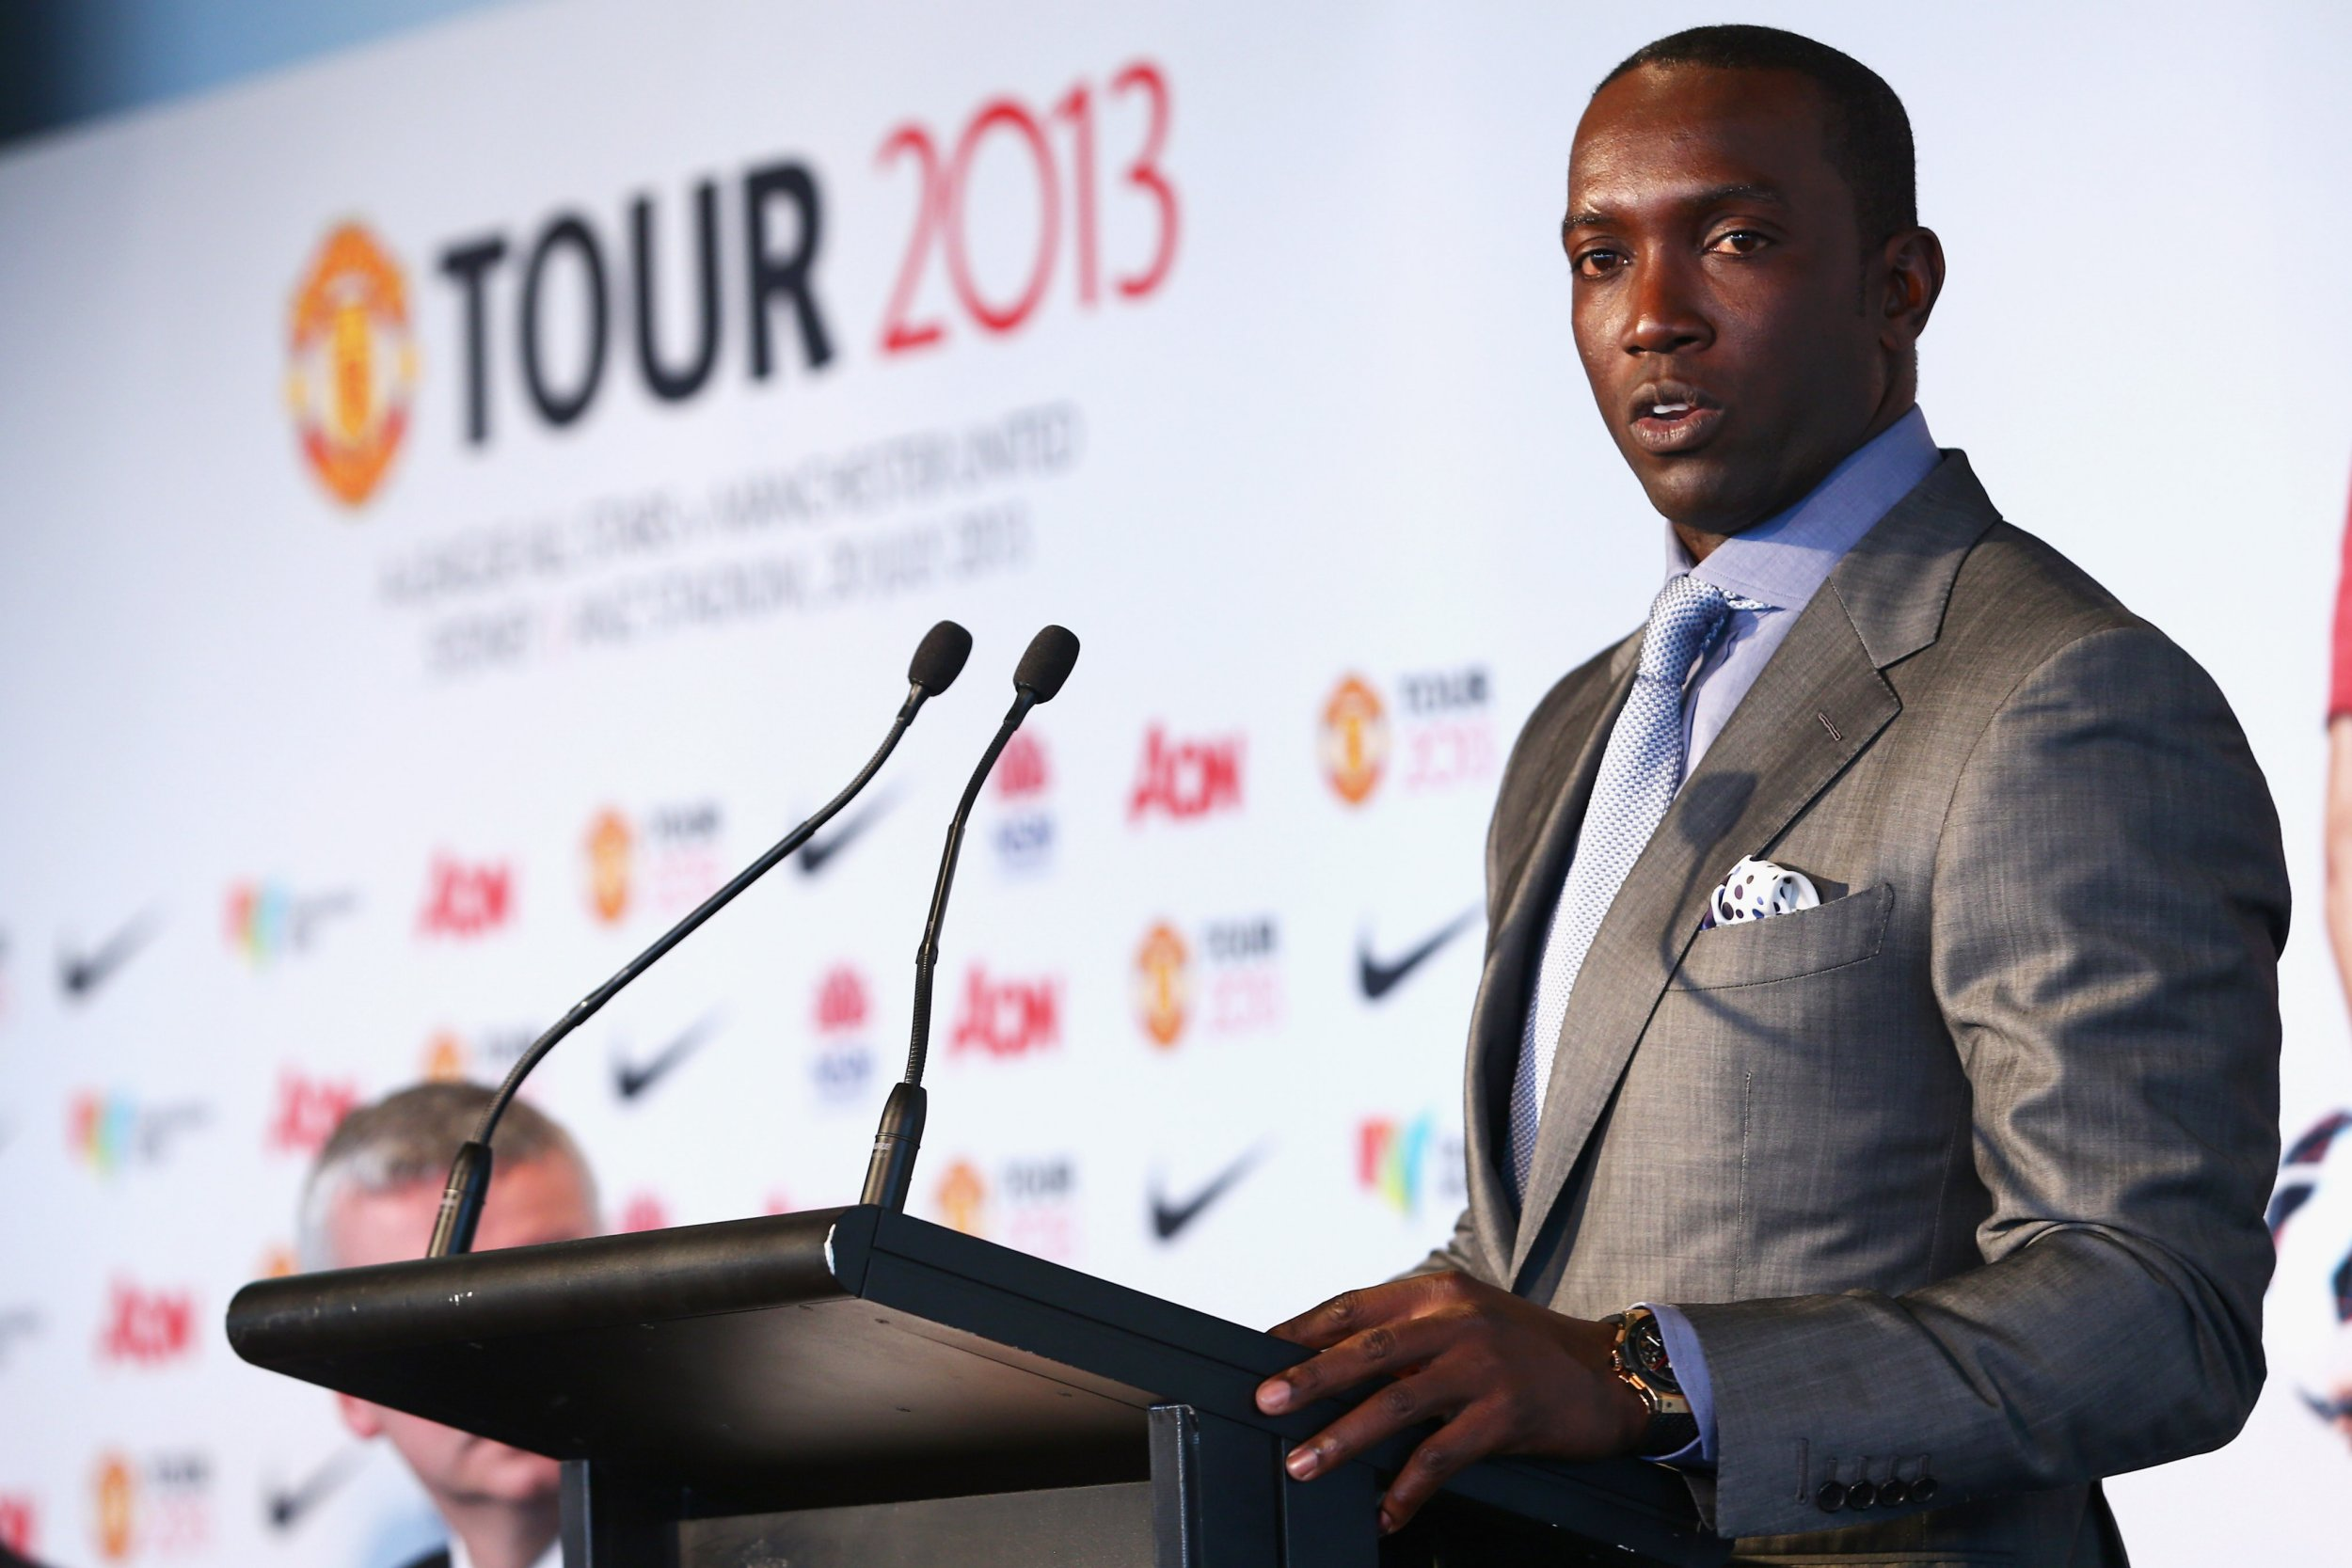 SYDNEY, AUSTRALIA - DECEMBER 10: Dwight Yorke speaks to the media during a press conference at Museum of Contemporary Art on December 10, 2012 in Sydney, Australia. Manchester United will play an A-League All-Stars match in Sydney on July 20, 2013. (Photo by Mark Kolbe/Getty Images)